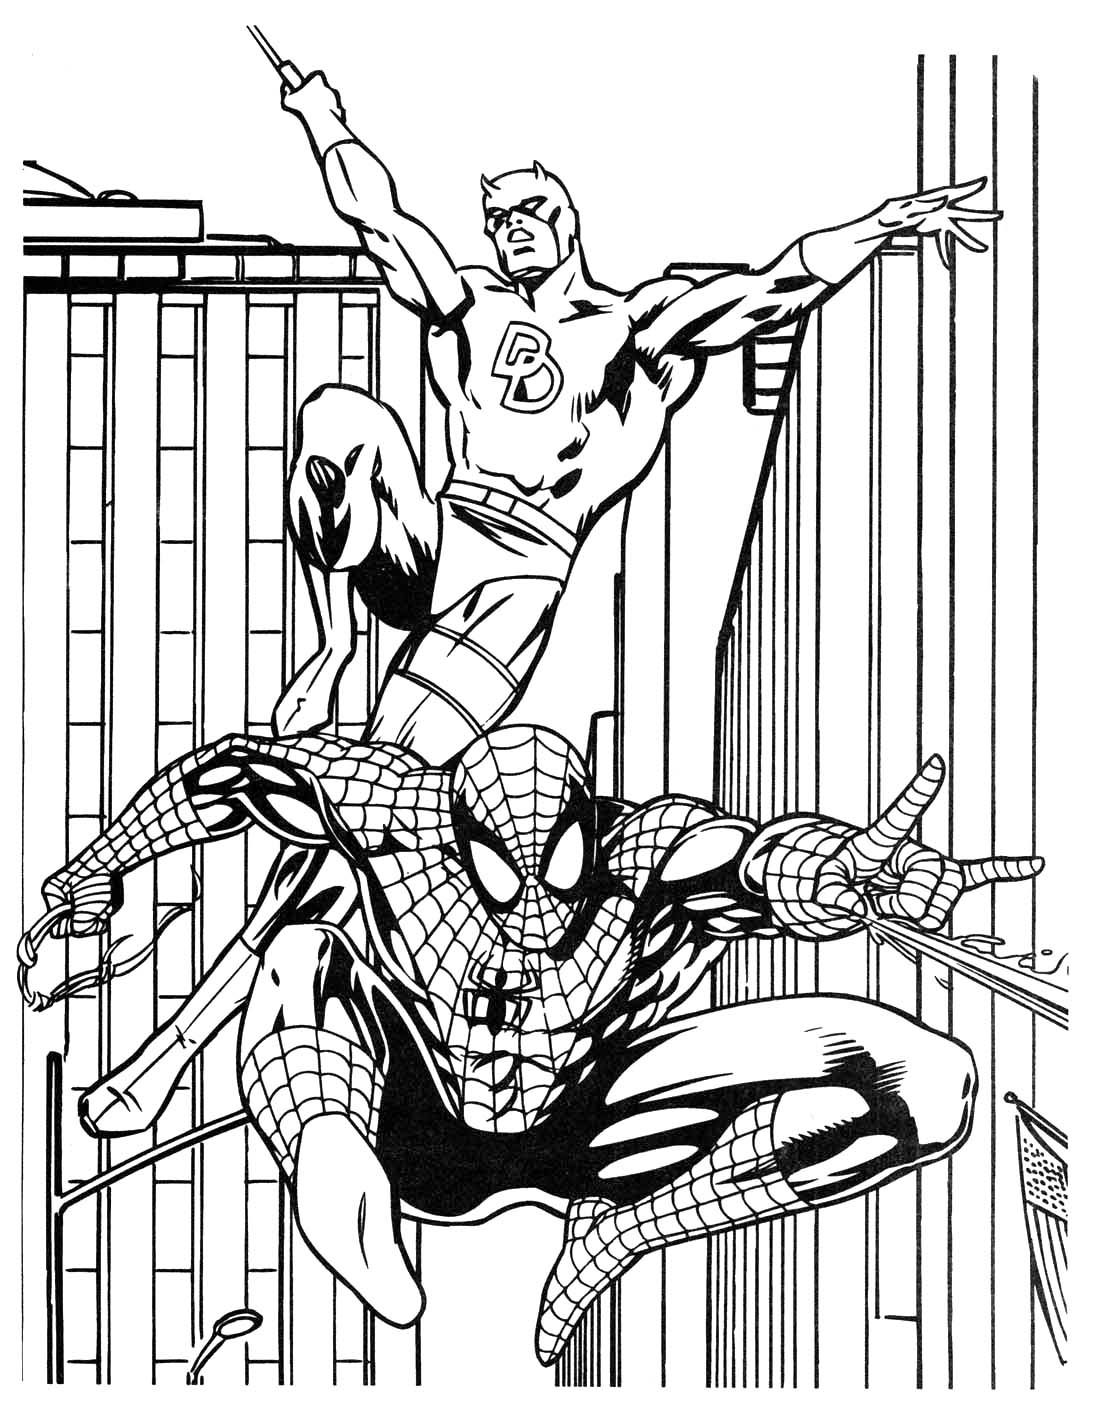 coloring book marvel super heroes - Super Heroes Coloring Book